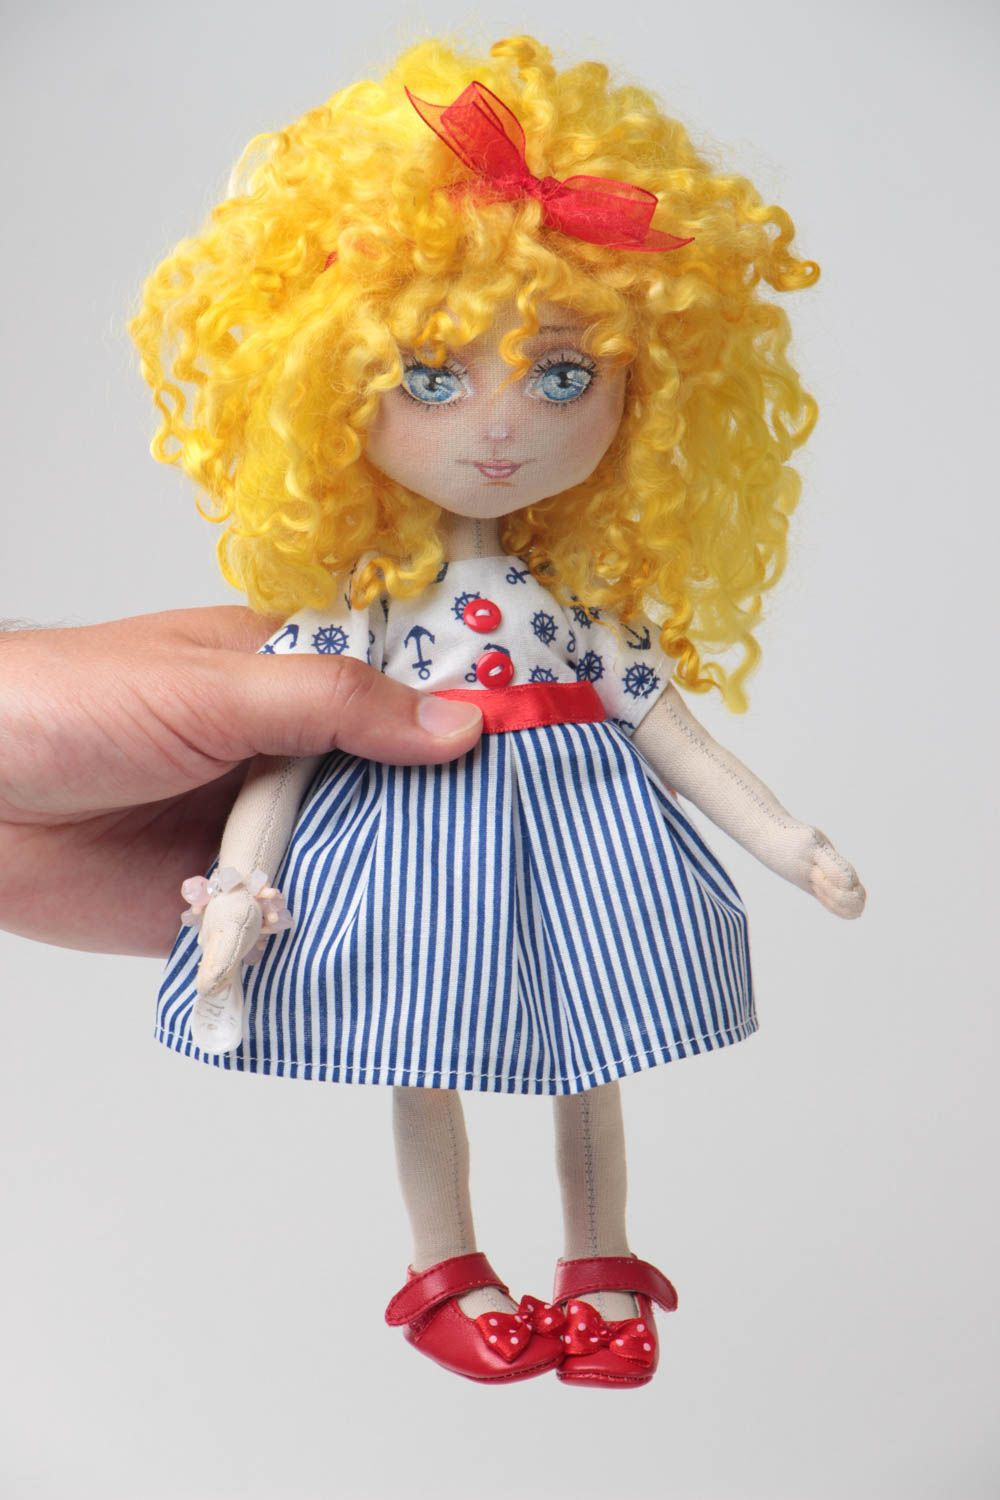 Handmade designer small fabric soft doll in blue striped dress and red shoes photo 5